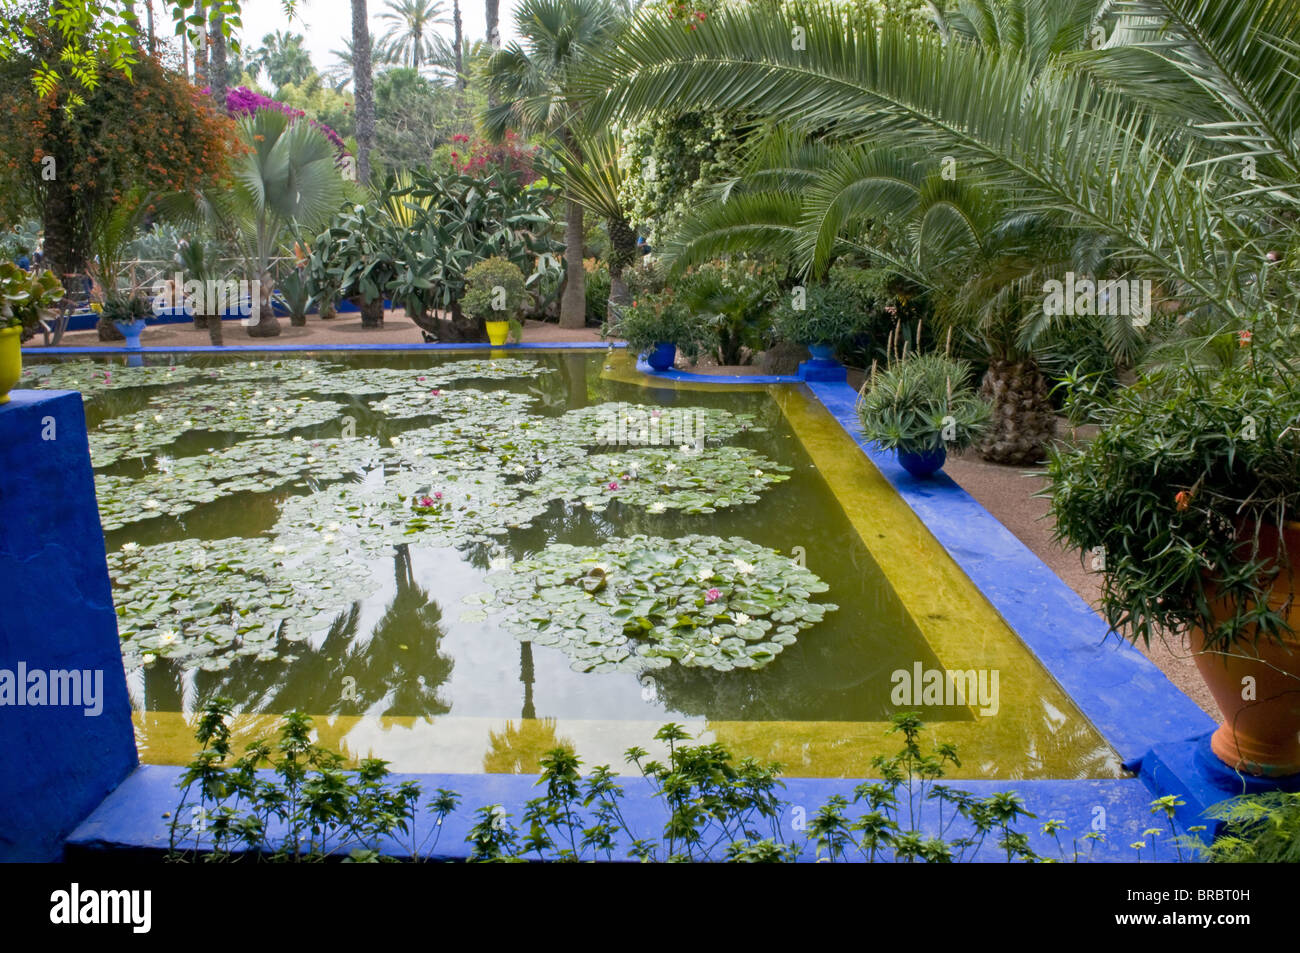 jardin majorelle marrakech photos jardin majorelle marrakech images alamy. Black Bedroom Furniture Sets. Home Design Ideas